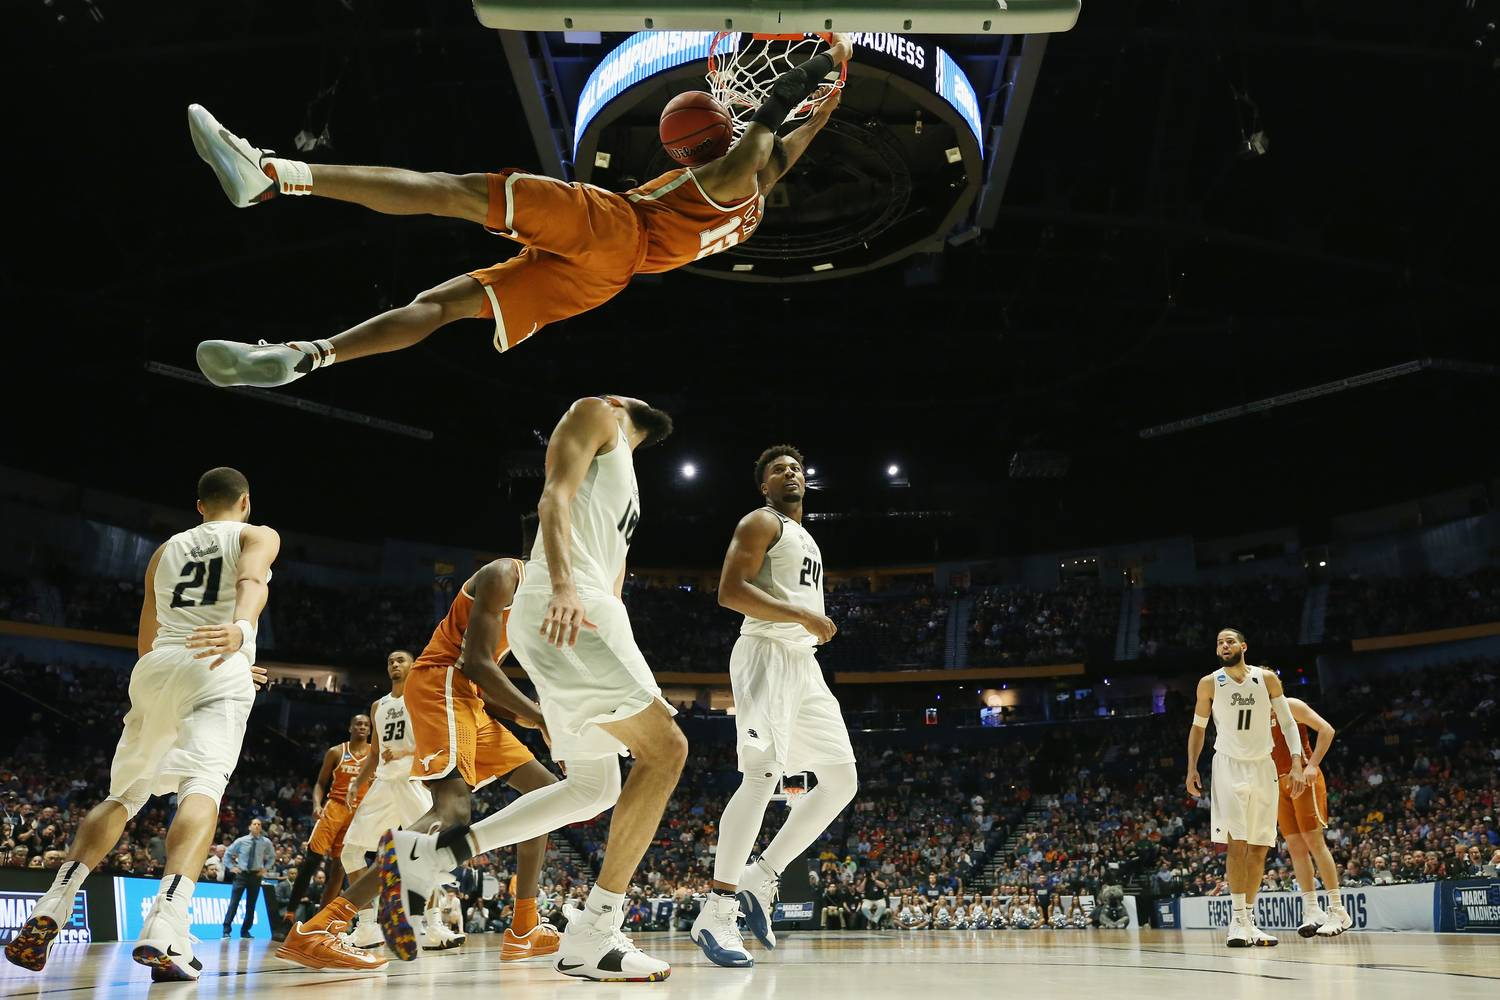 66c48d8b5e9 12 Big things about Big 12 basketball  And then there were 4 ...